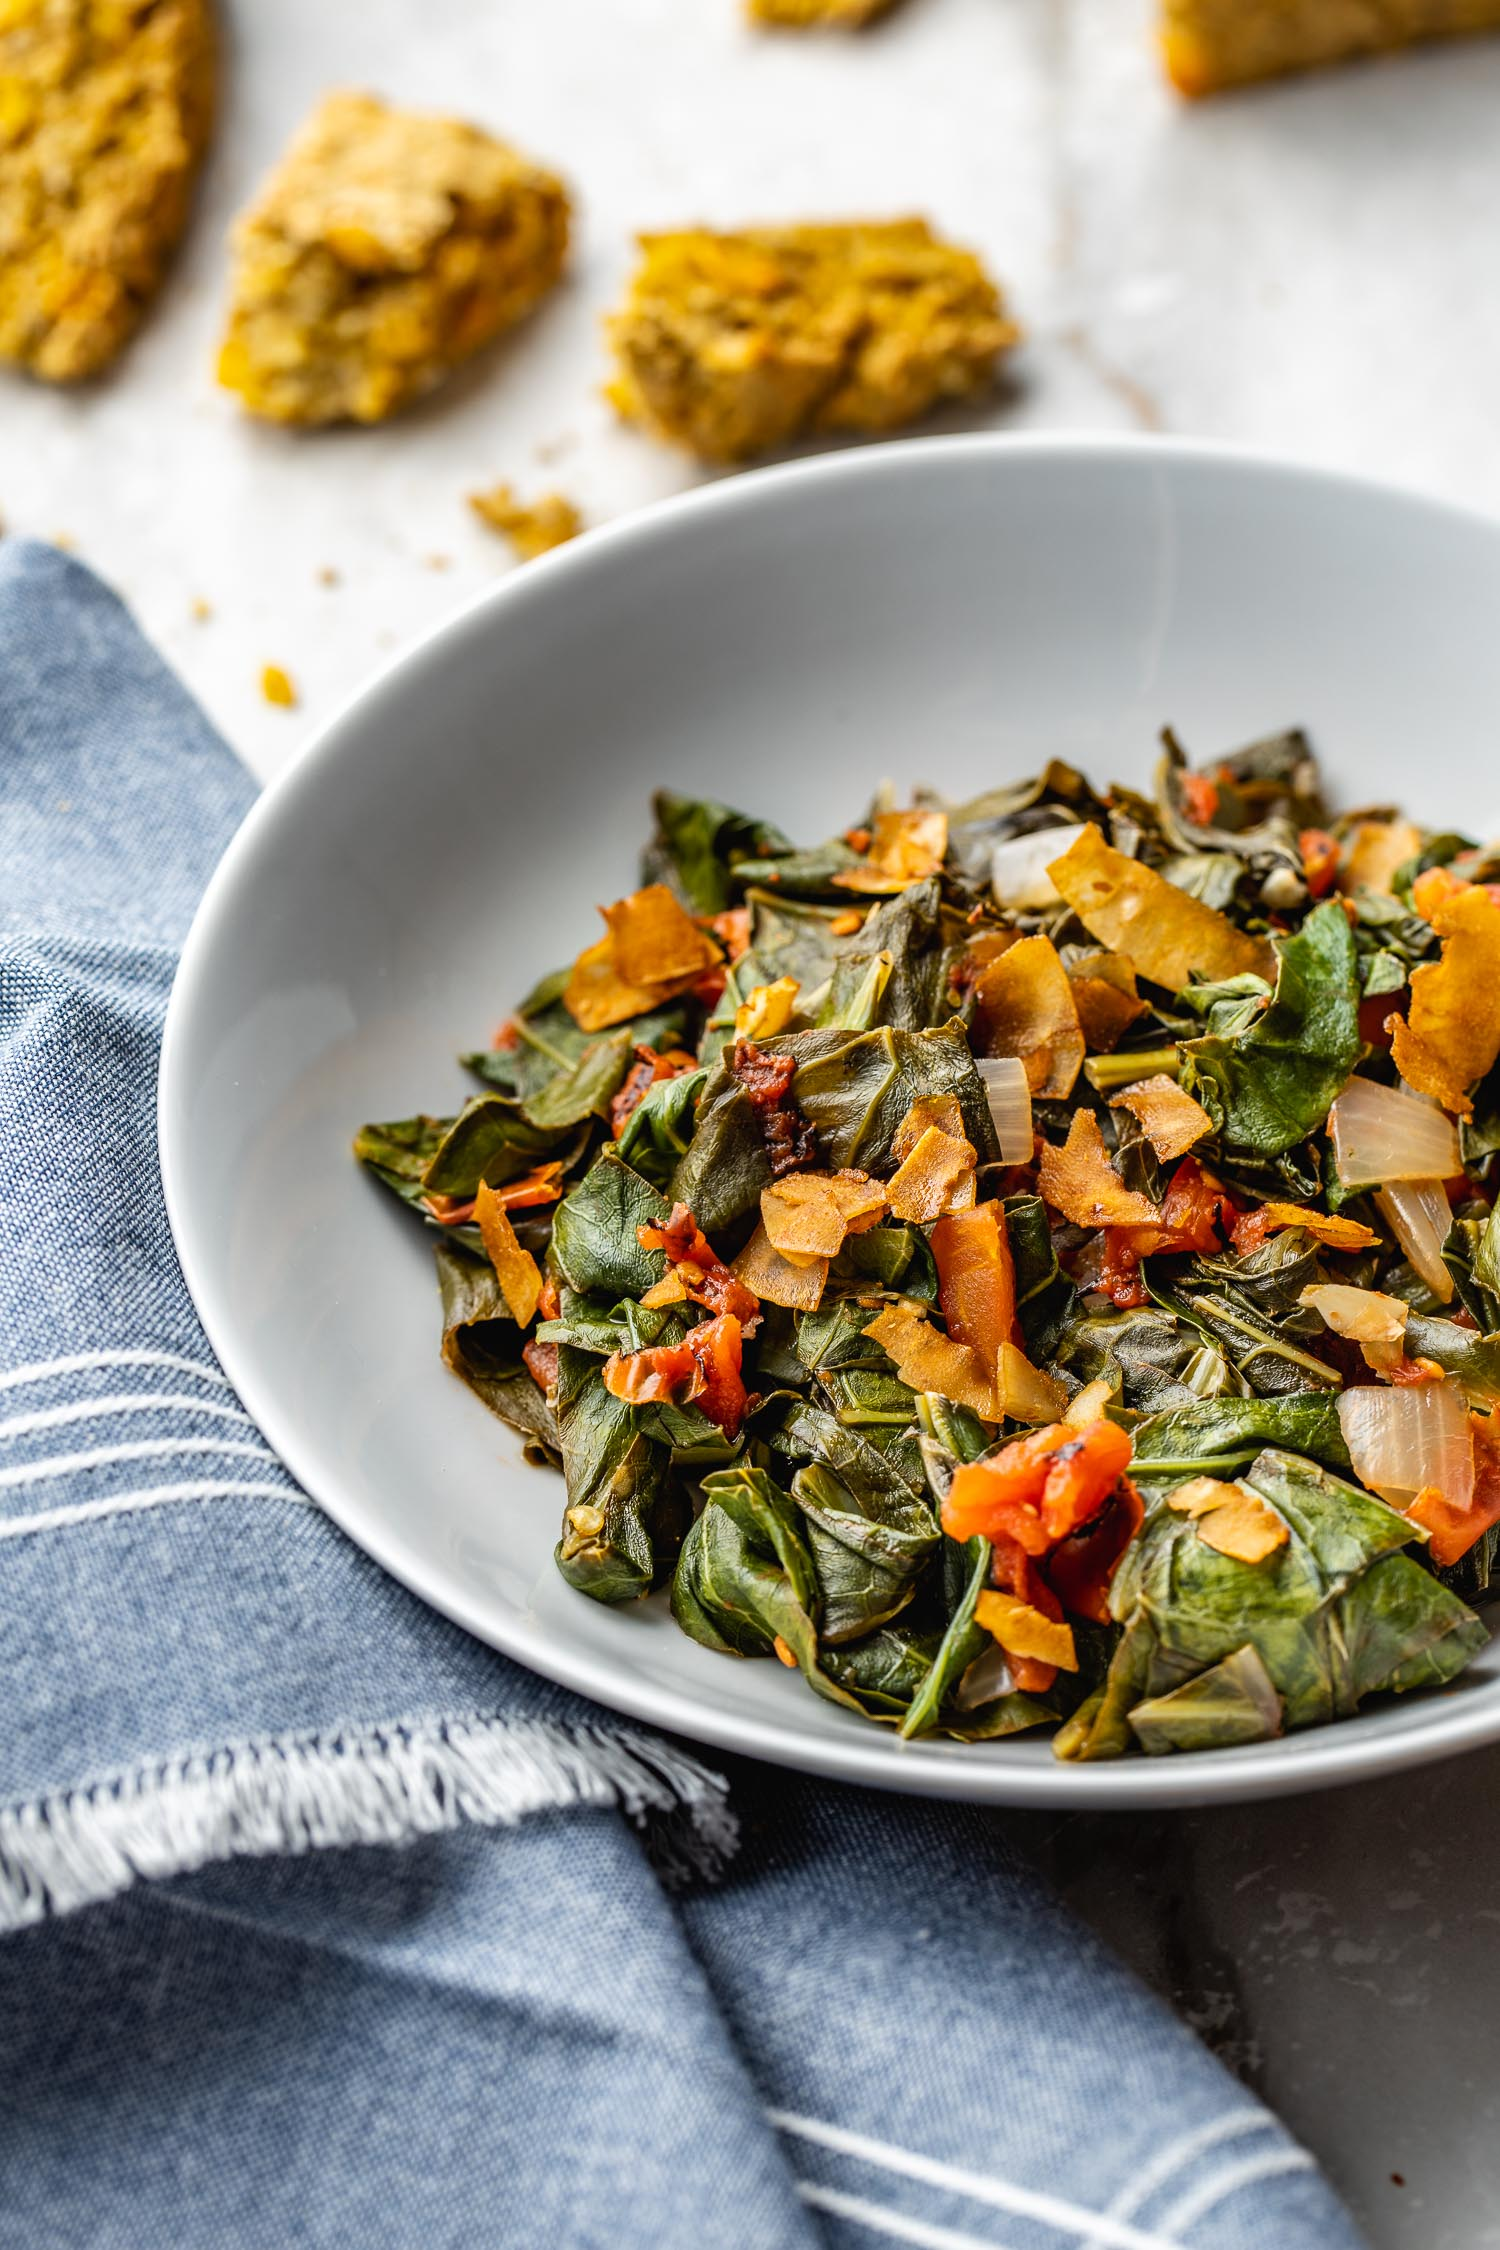 a shallow white bowl of southern-style collard greens with bits or cornbread scattered beside it along with a blue denim cloth napkin